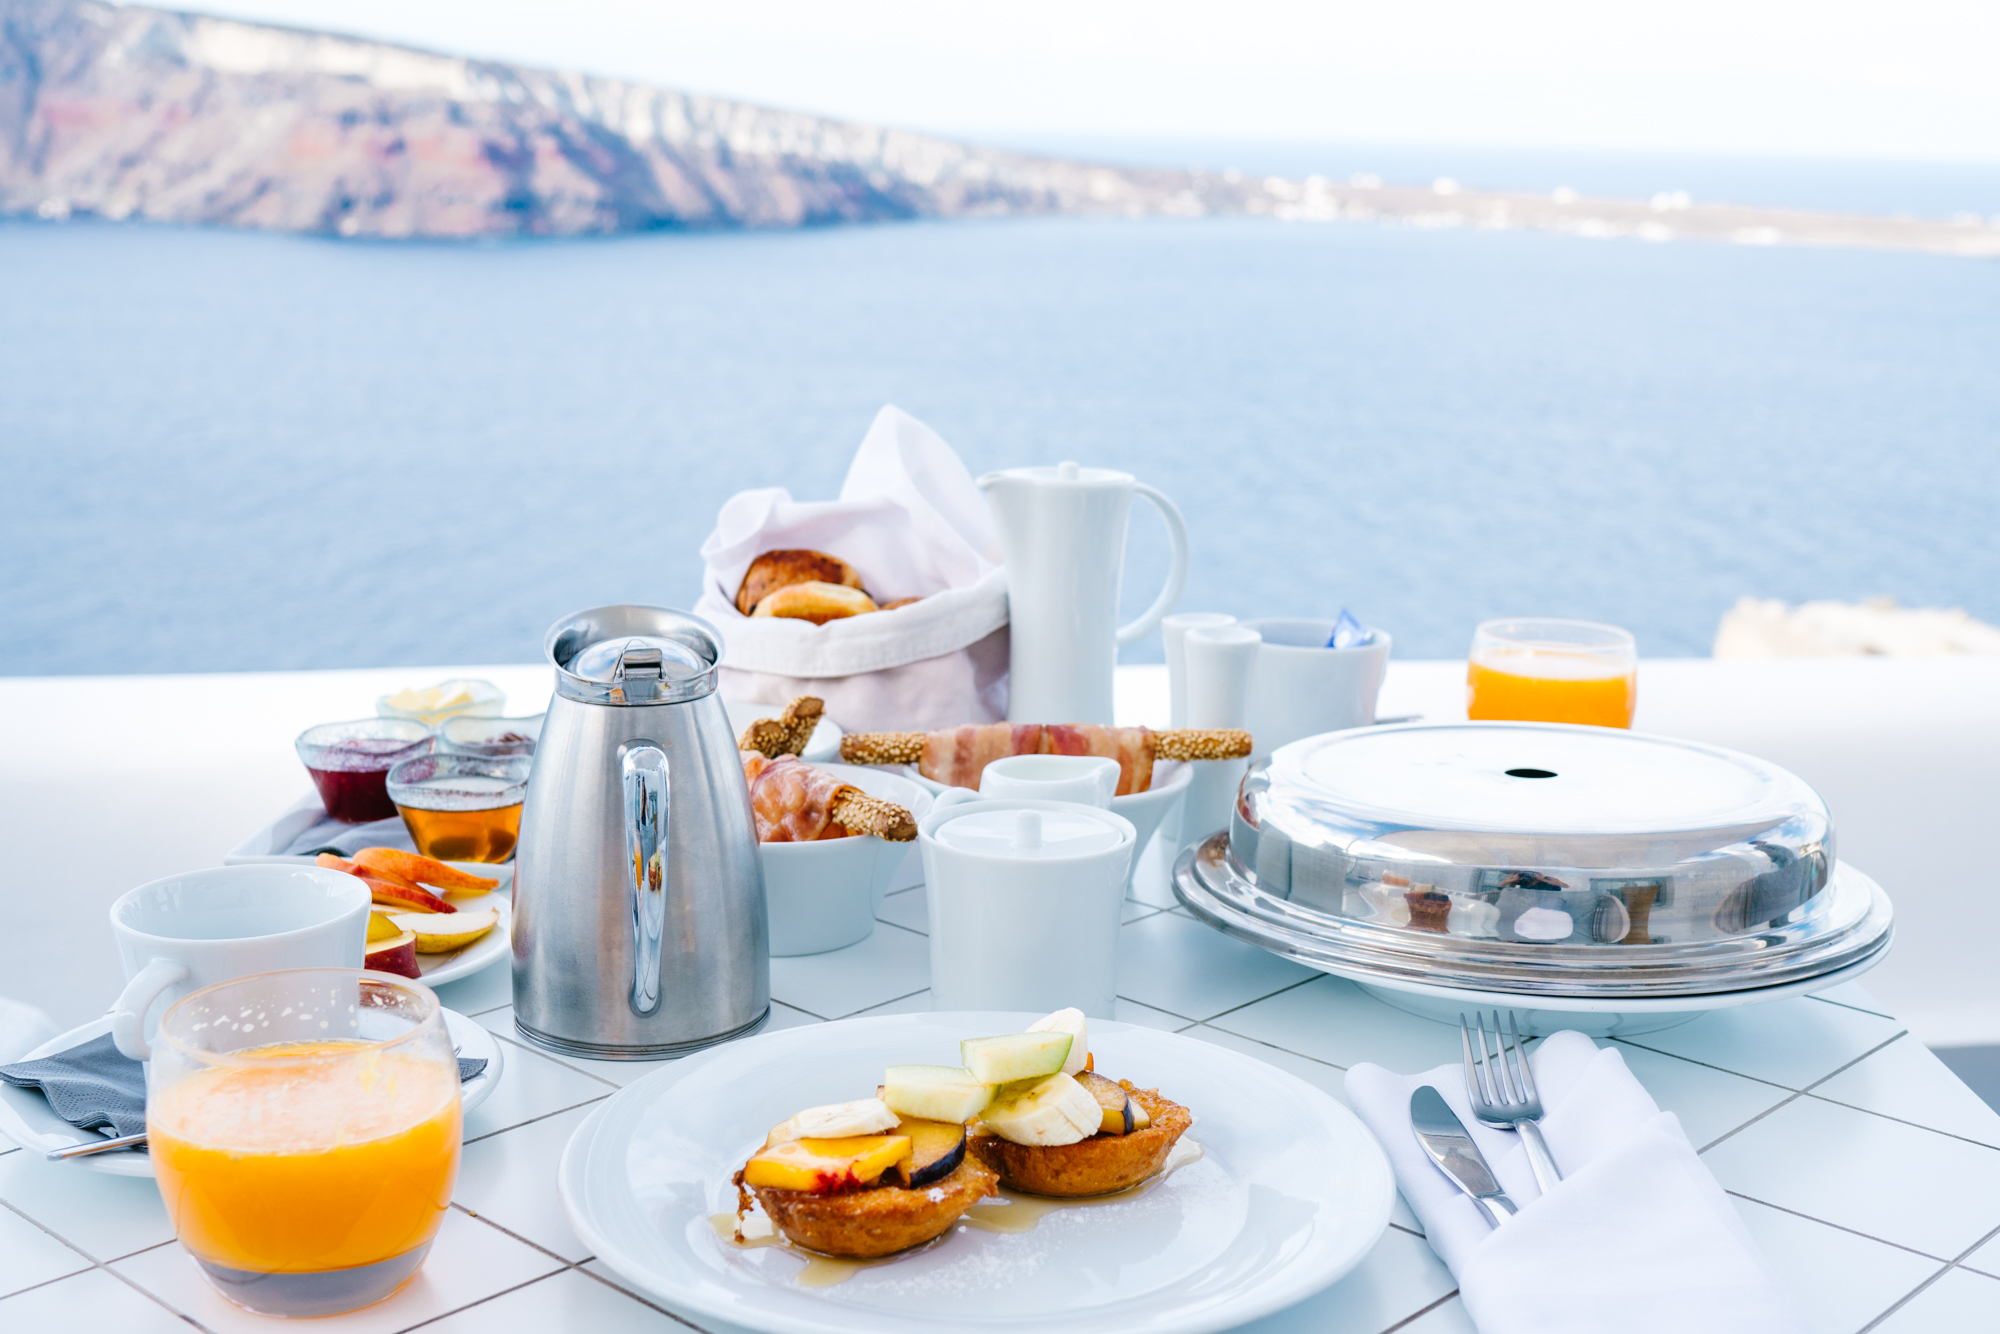 Breakfast with a view in Santorini, Greece